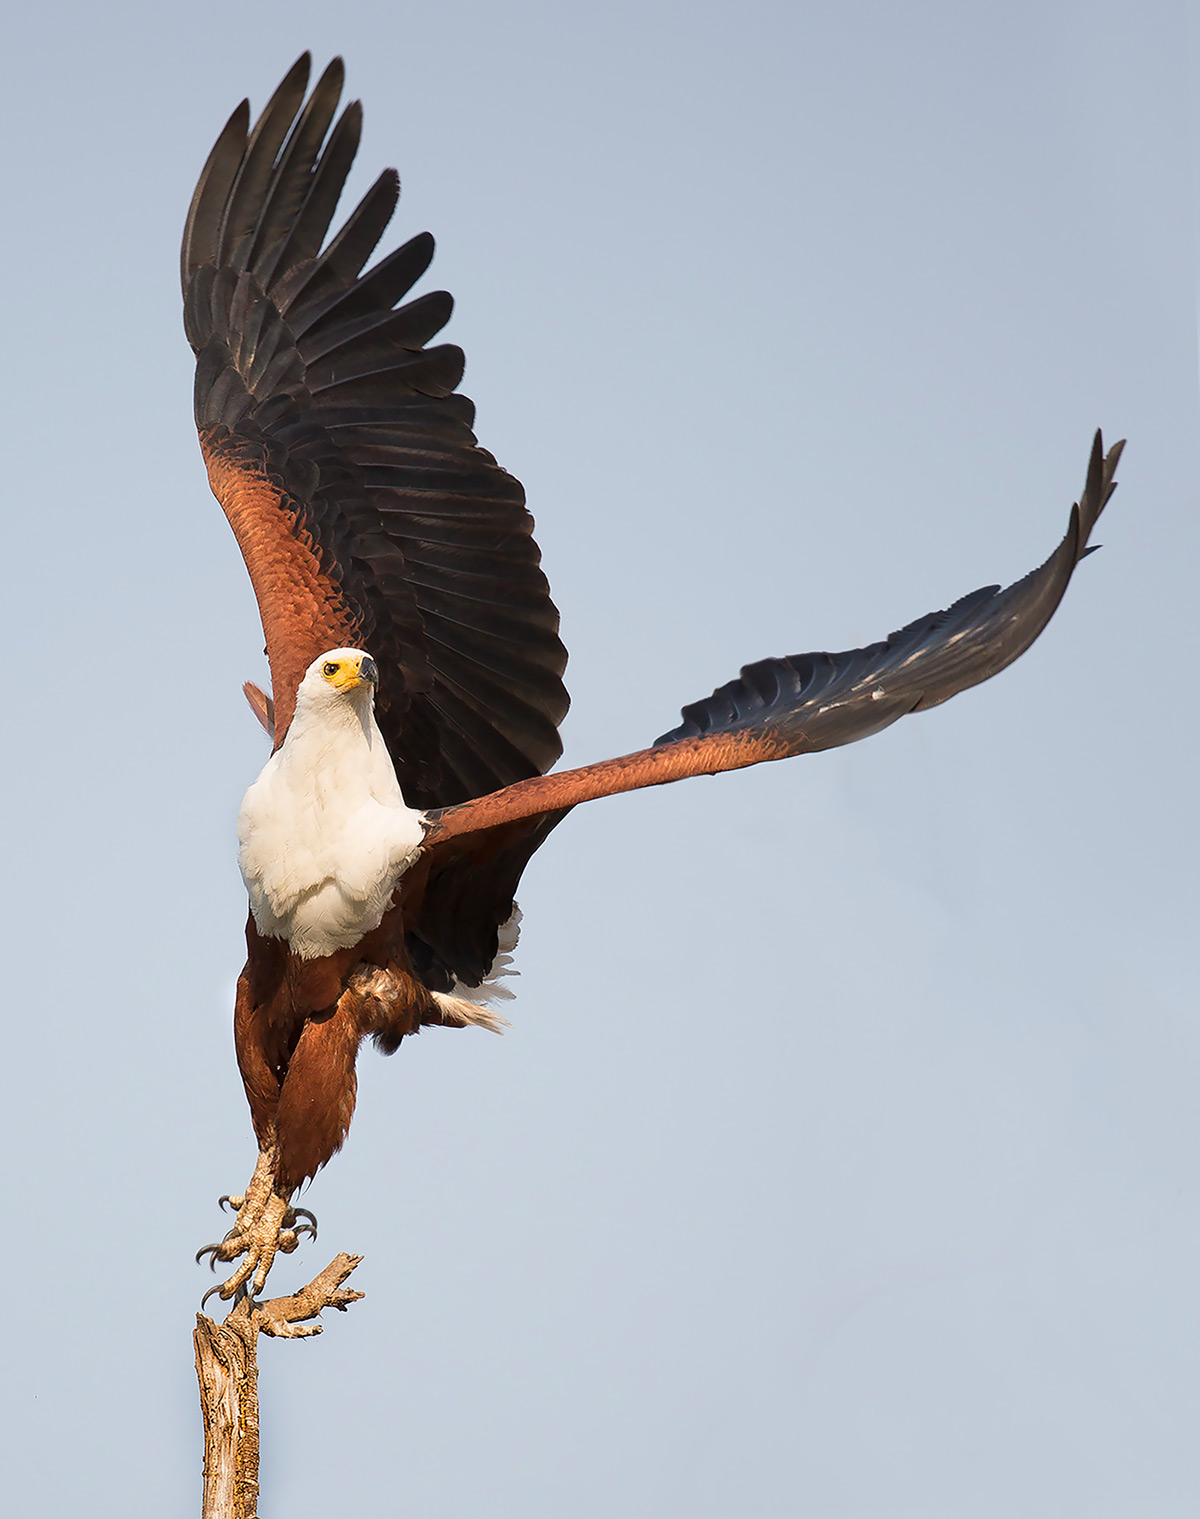 A fish eagle takes flight in Lower Zambezi National Park, Zambia © Carol Barry